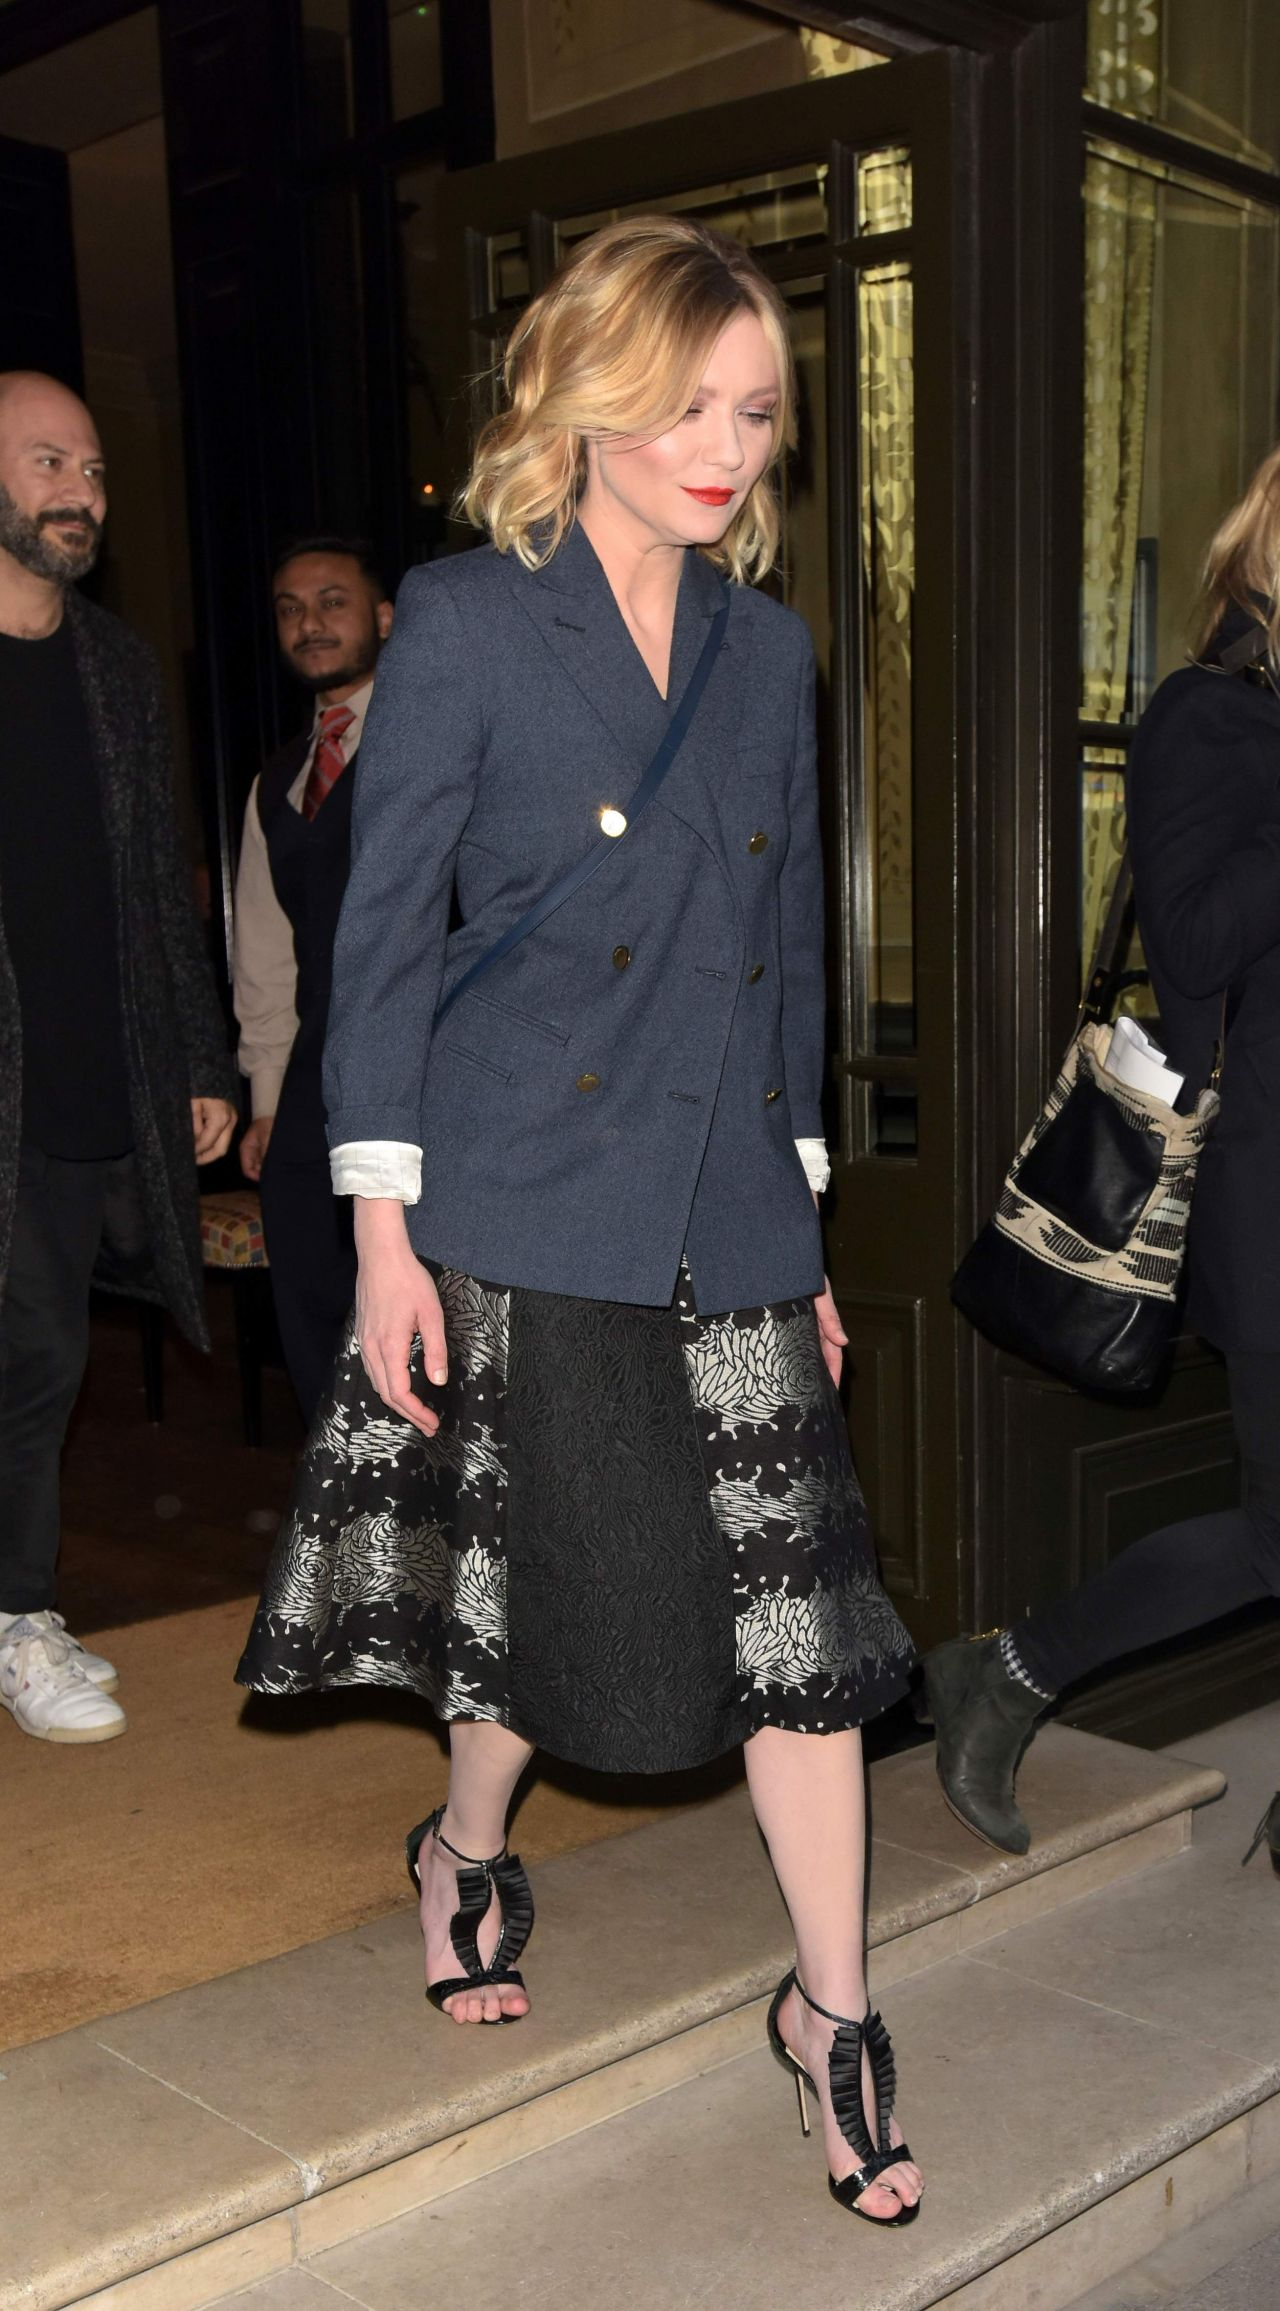 Dunst Leaving the Covent Garden Hotel in London UK 3312016